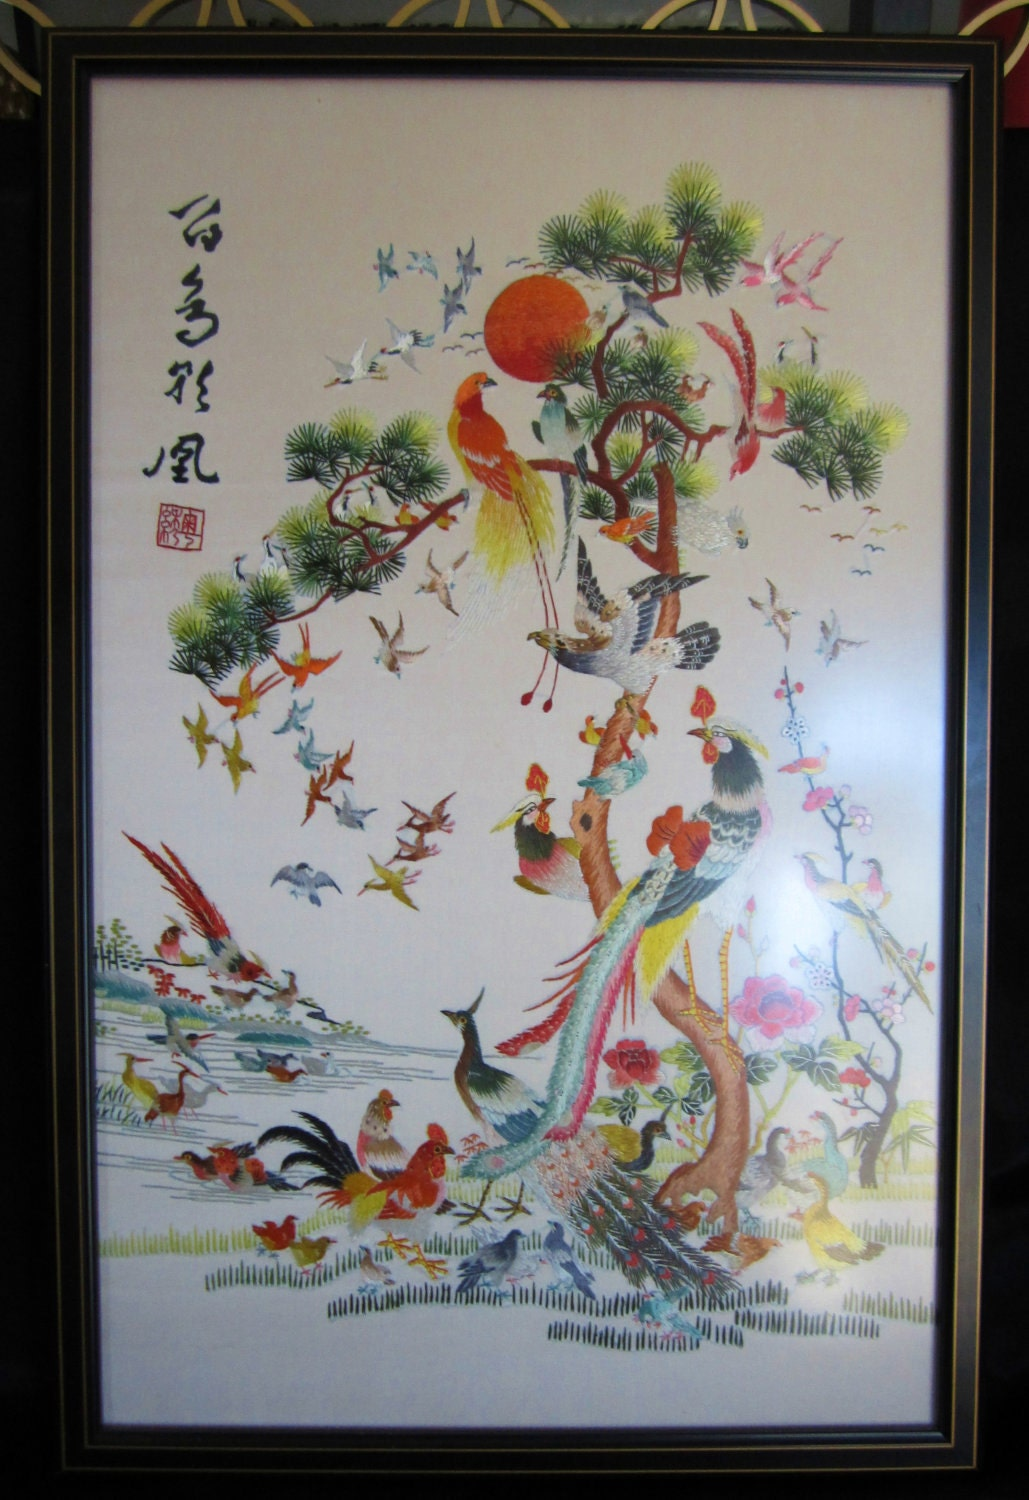 Vintage Japanese Silk Embroidery-Framed-Gorgeous Birds